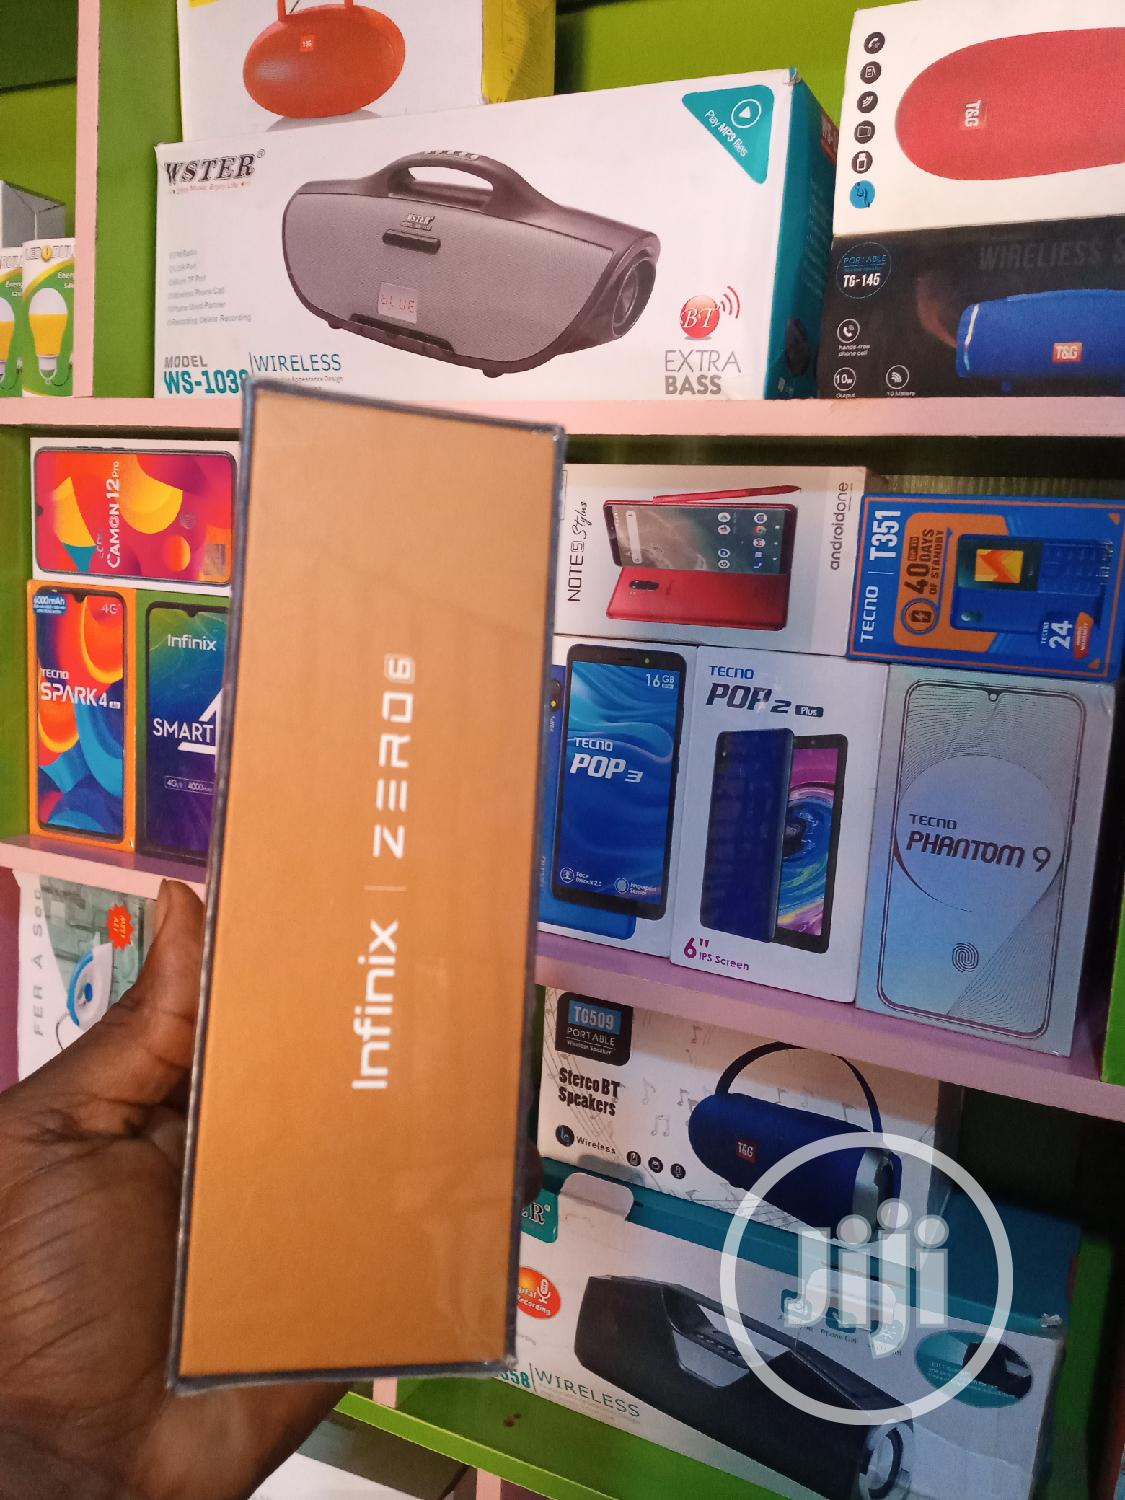 New Infinix Zero 6 64 GB | Mobile Phones for sale in Okigwe, Imo State, Nigeria